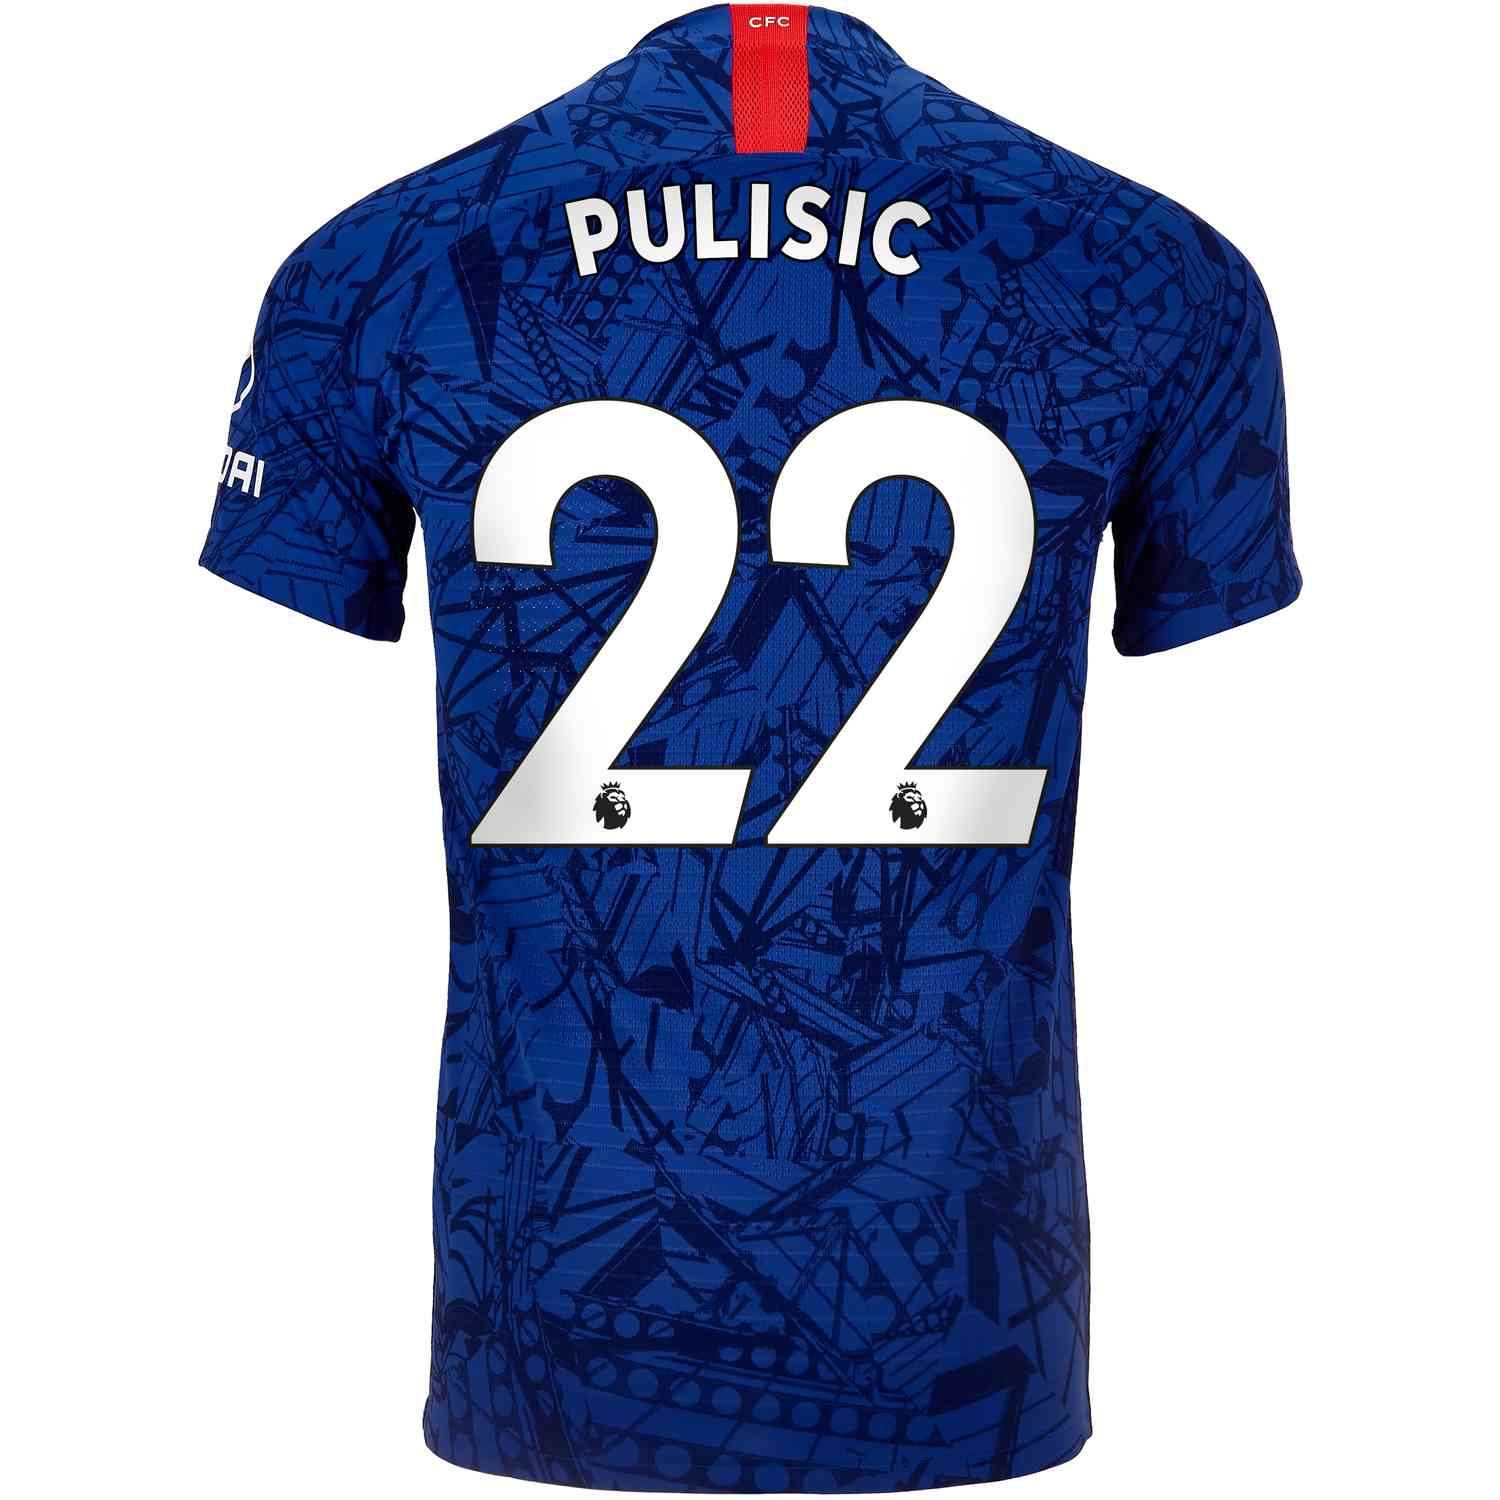 best cheap 64c60 83461 2019/20 Nike Christian Pulisic Chelsea Home Match Jersey ...